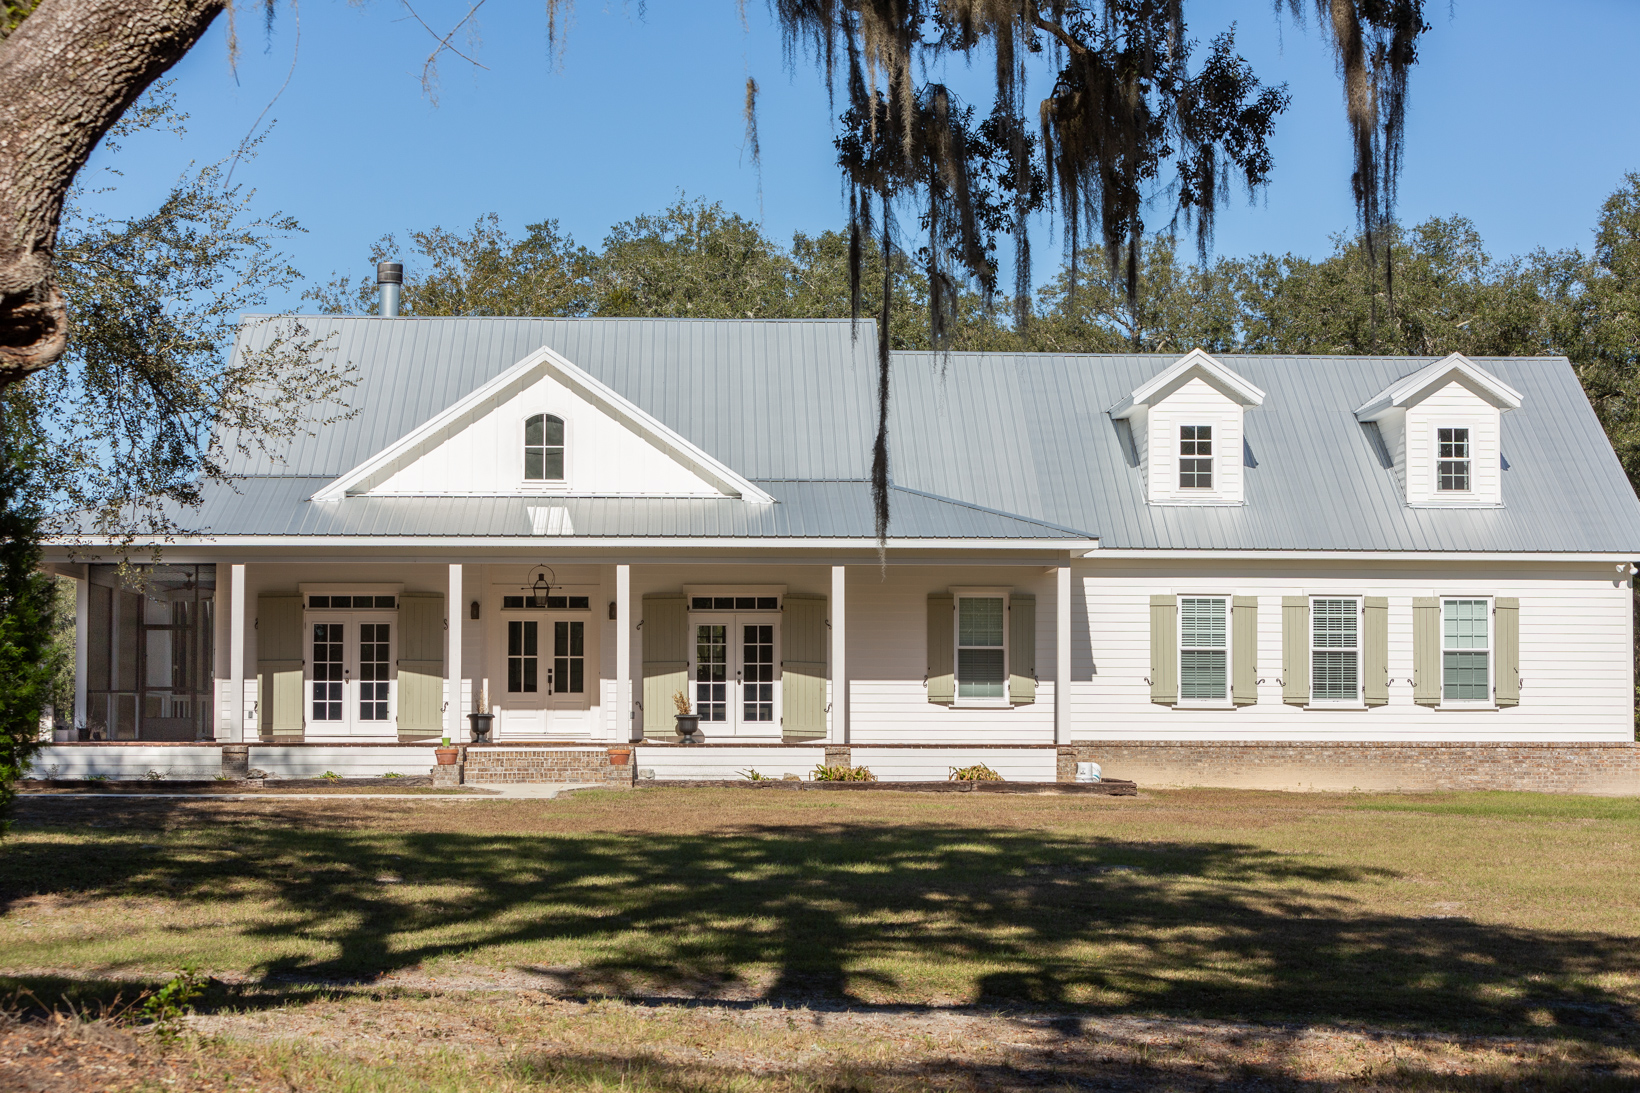 Home with front porch and metal roof